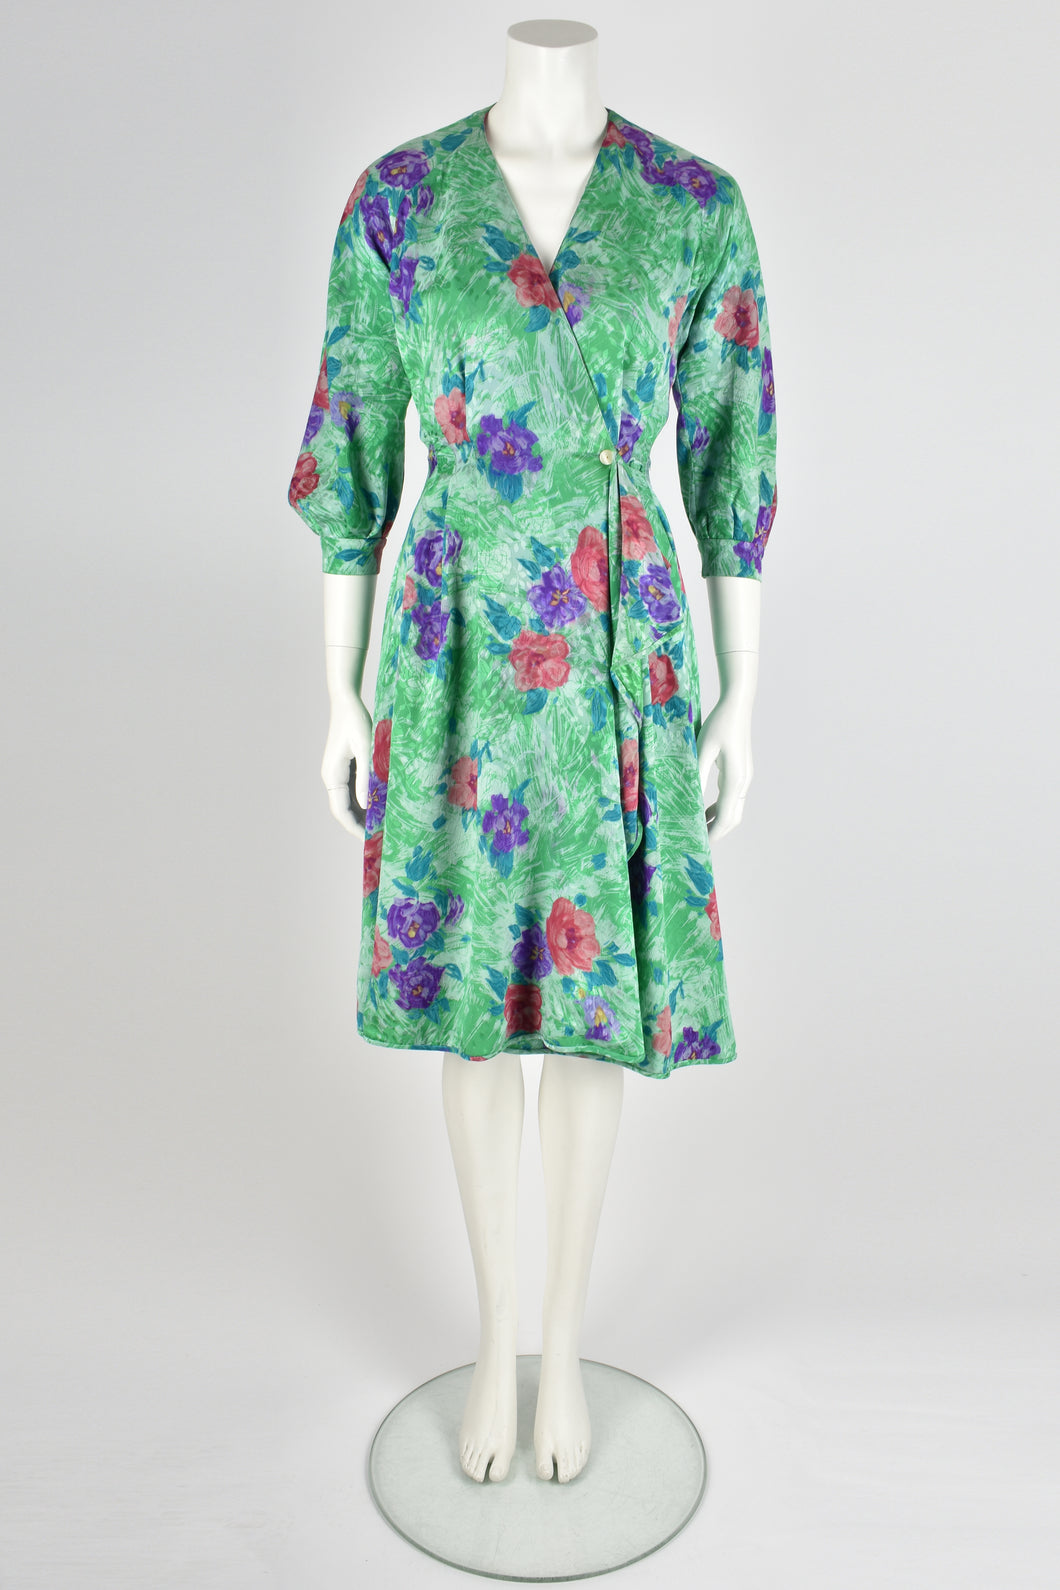 EMANUEL UNGARO 80s rose print wrap dress XS